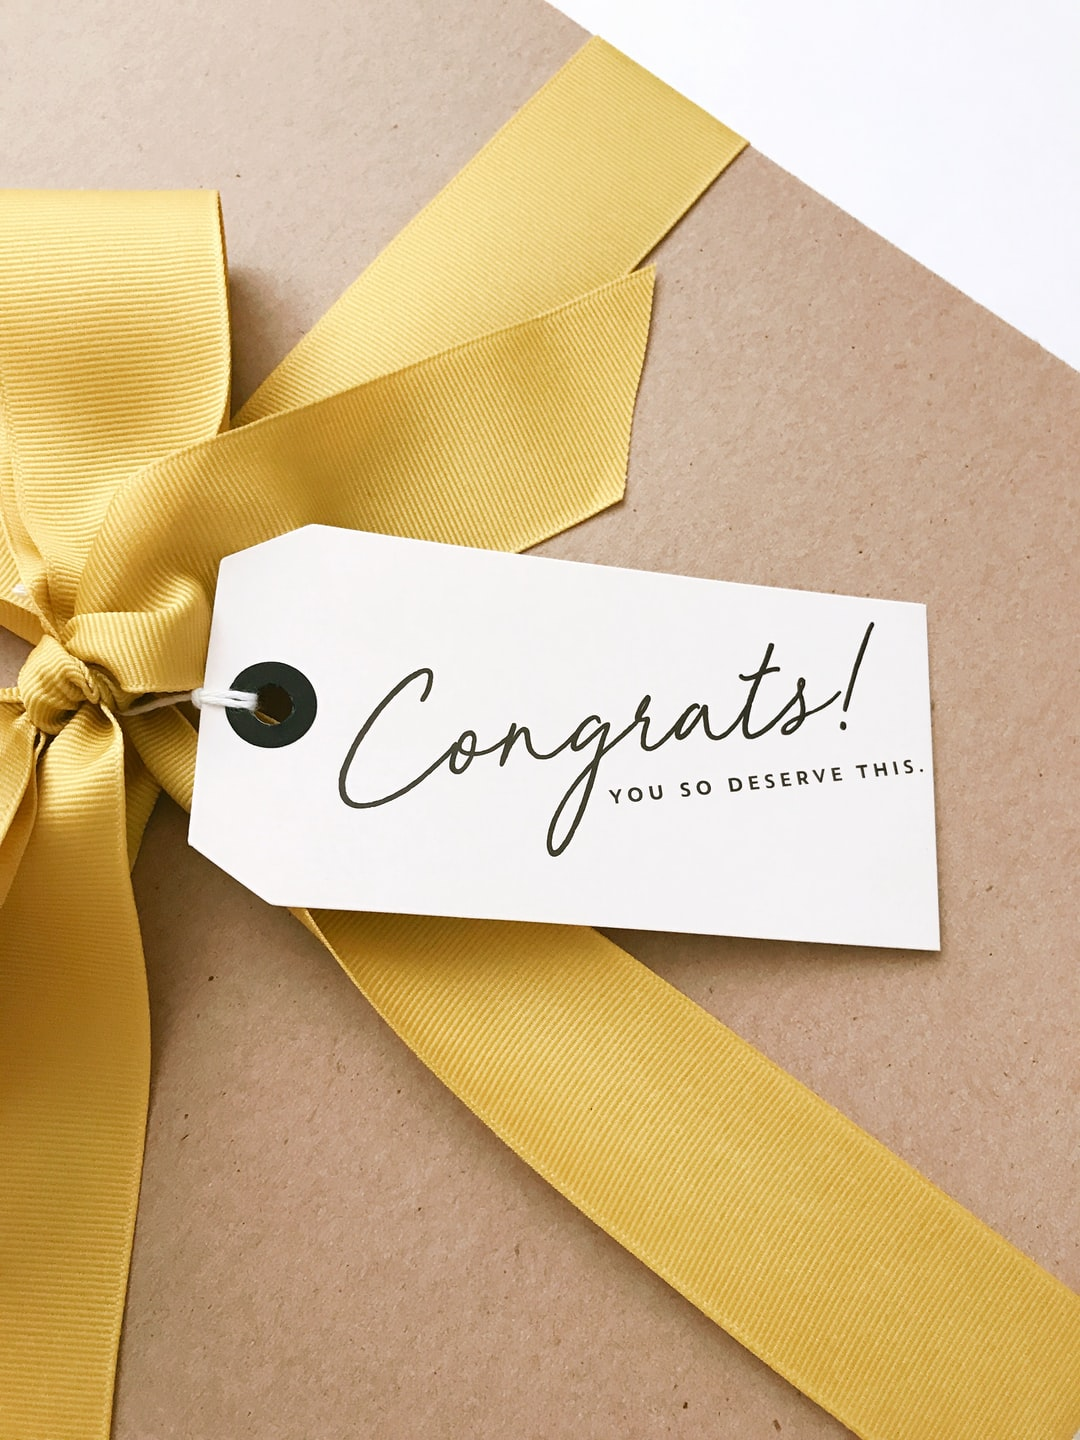 congrats! deluxemodern photostyling + design    product design